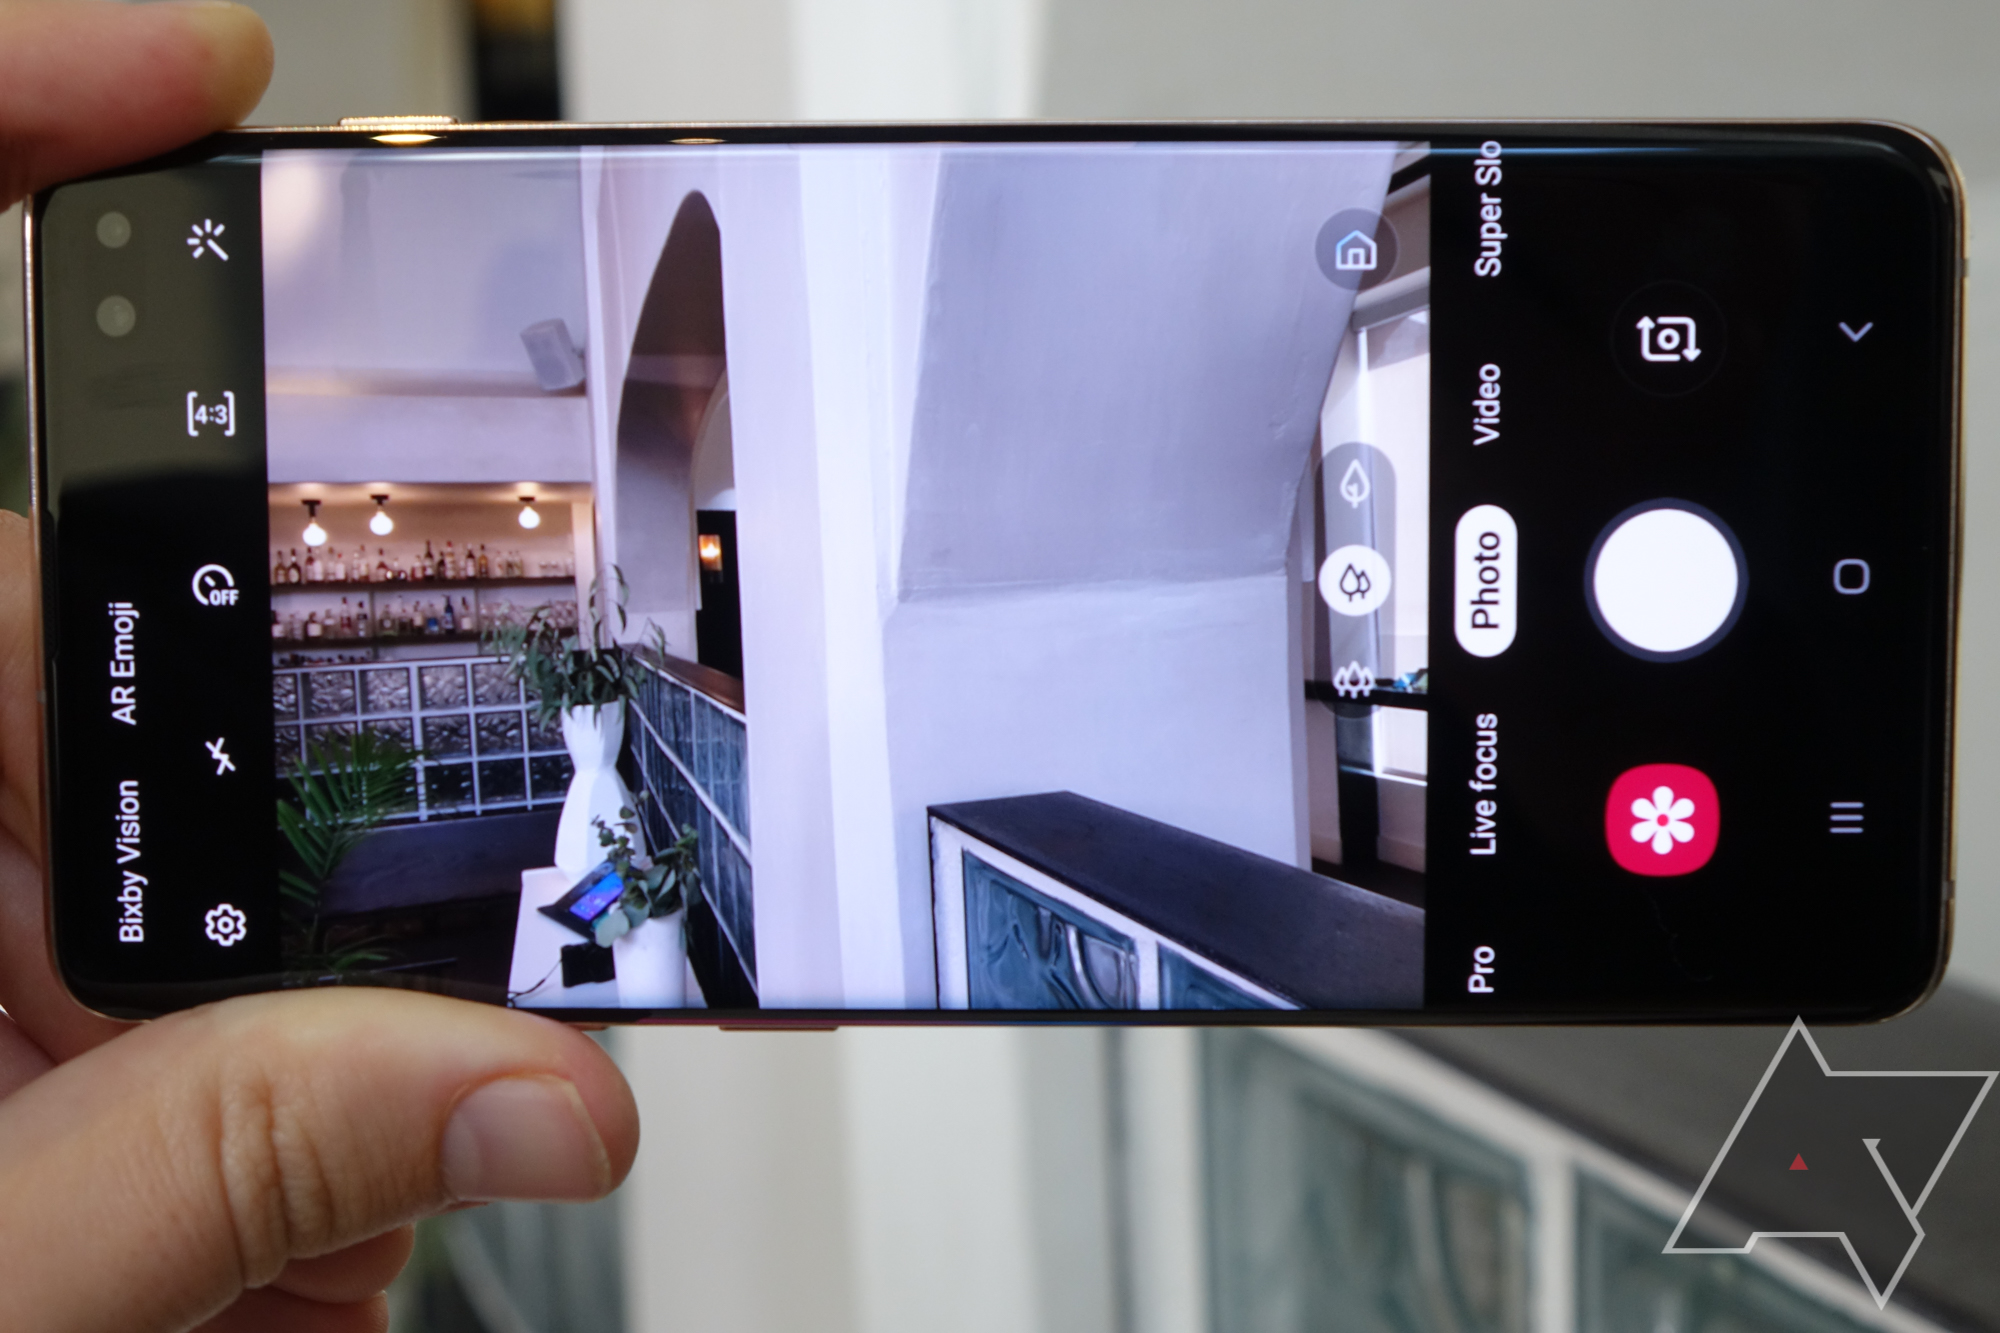 Samsung is planning a super-exclusive, limited Galaxy Fold launch in April